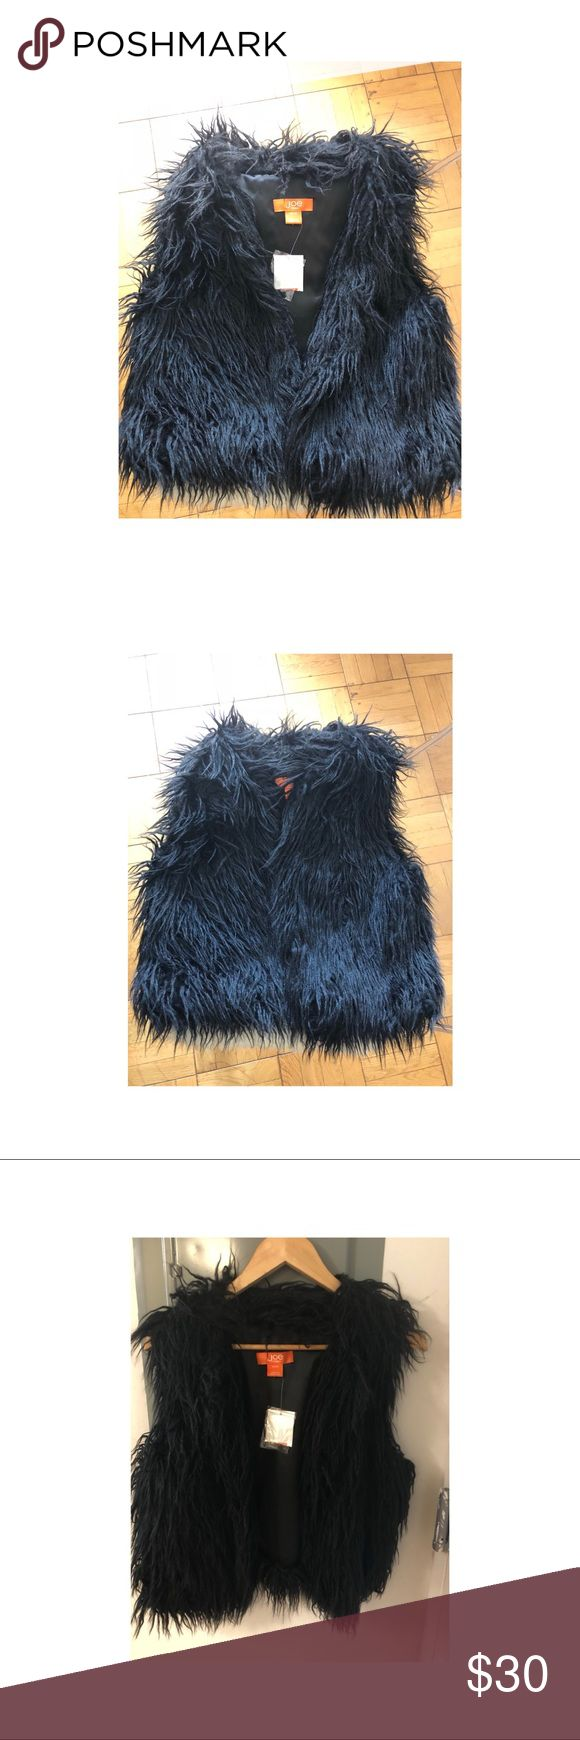 Joe Fresh NWT faux fur Black Gilet Black faux fur like gilet from designer Joe Fresh. New with tags. Never worn.  Perfect to pair with jeans or a dress. Great fall item. Size medium. Hits right above the hip for a sleek fit. Joe Fresh Jackets & Coats Vests